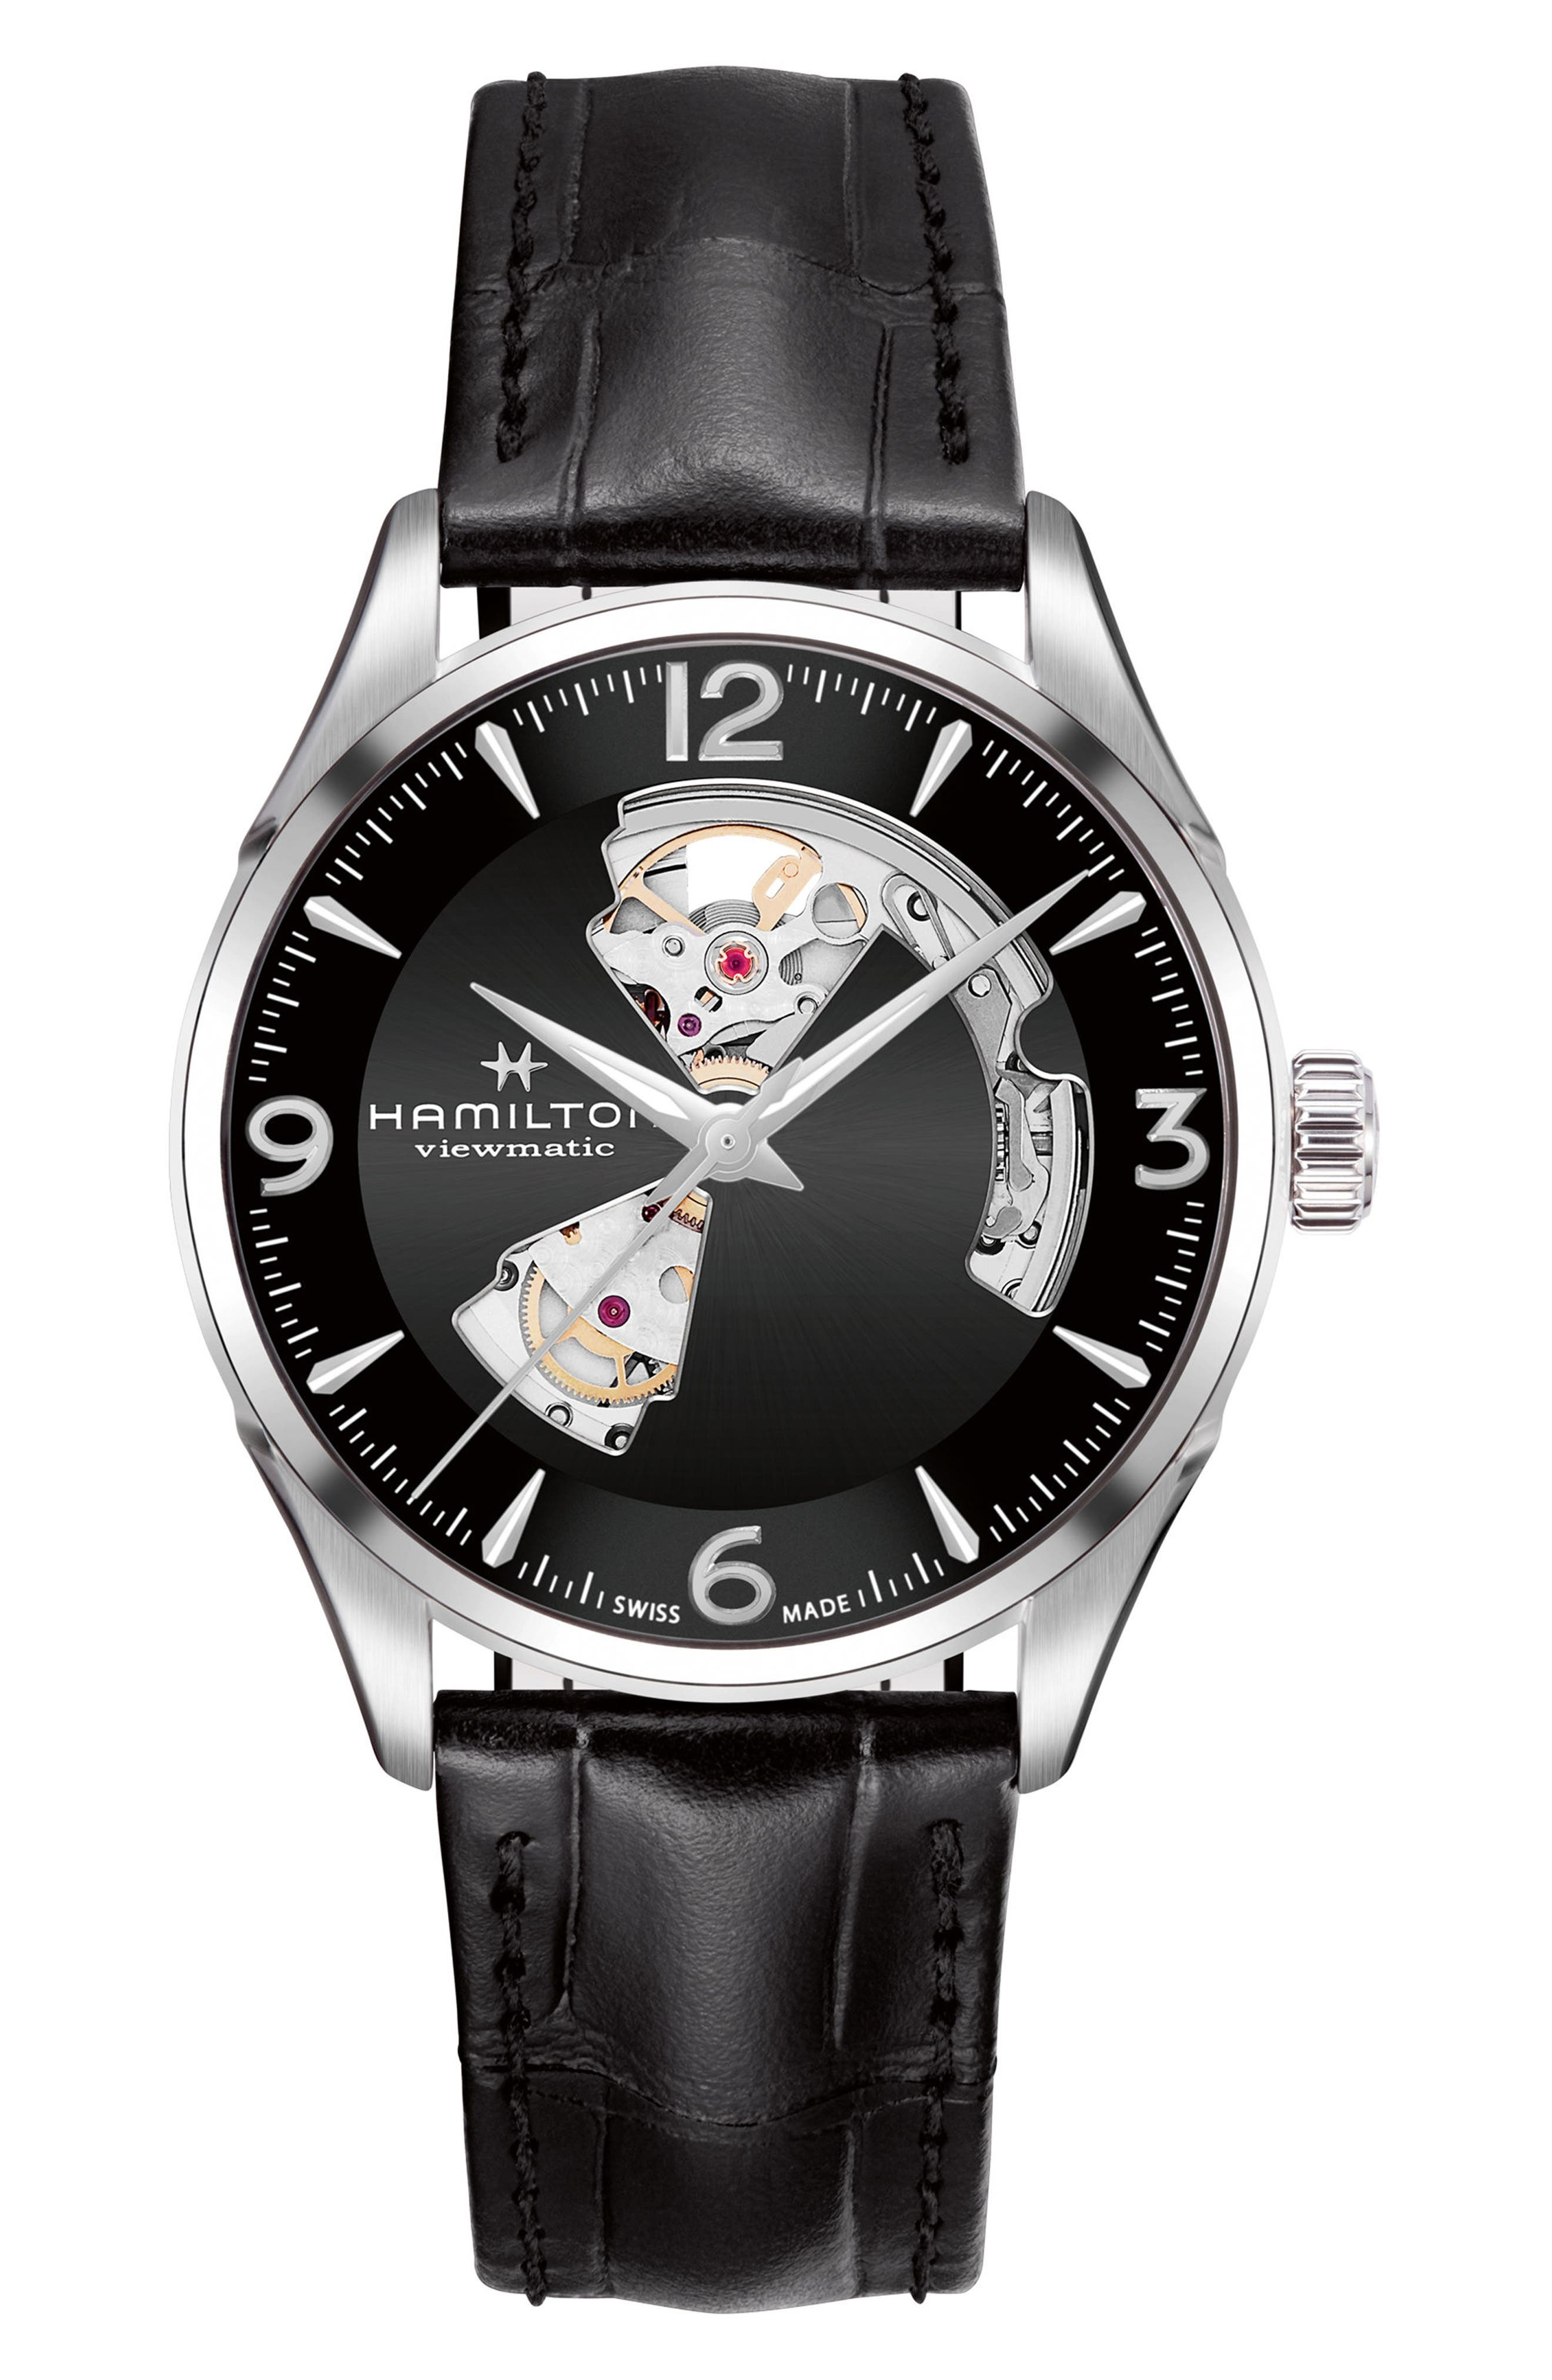 Hamilton Jazzmaster Open Heart Automatic Leather Strap Watch, 42mm